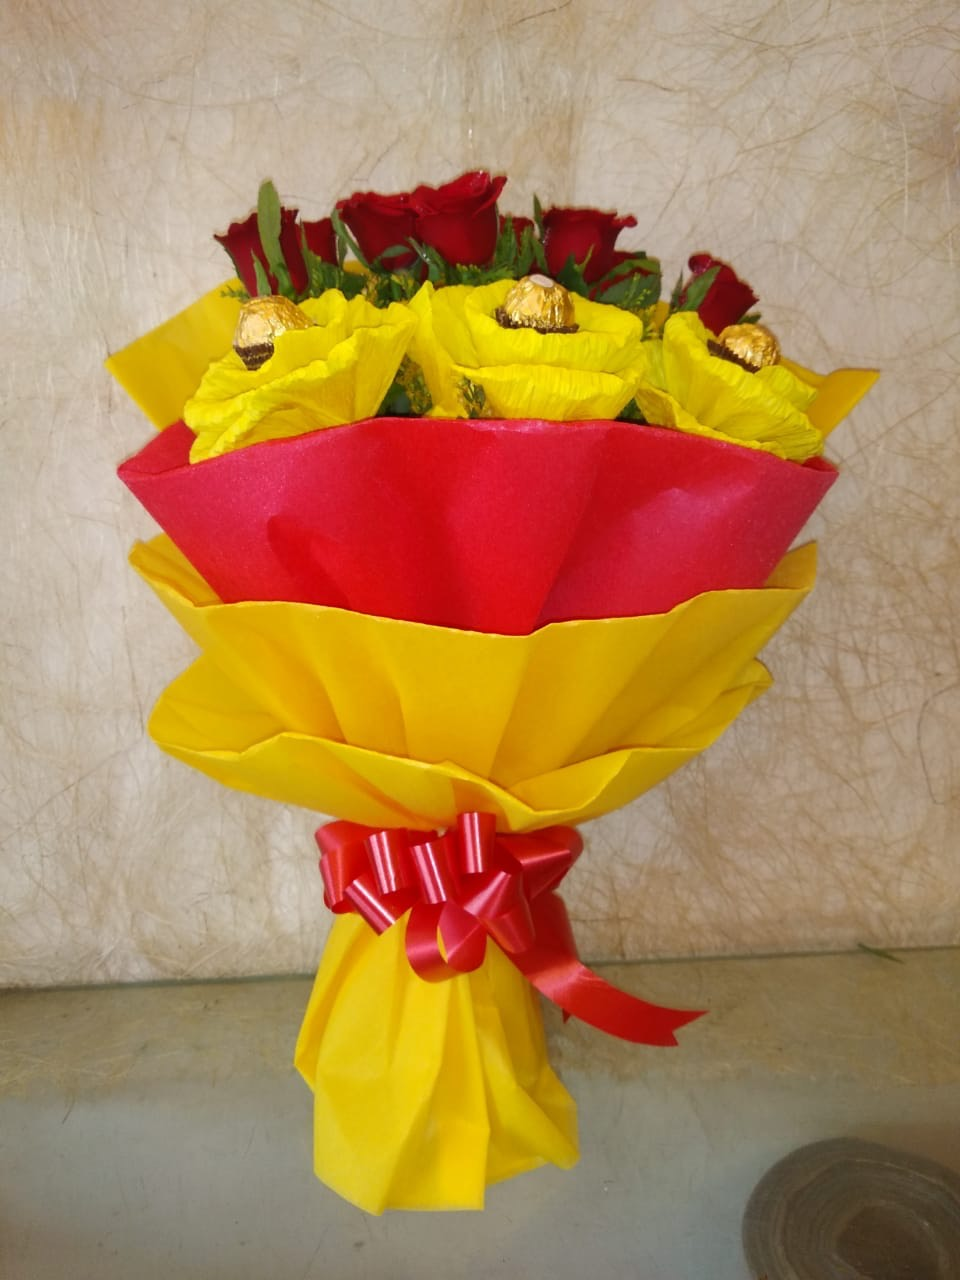 Flowers Delivery in Sector 22 GurgaonRed Roses Ferrero Rocher Bunch